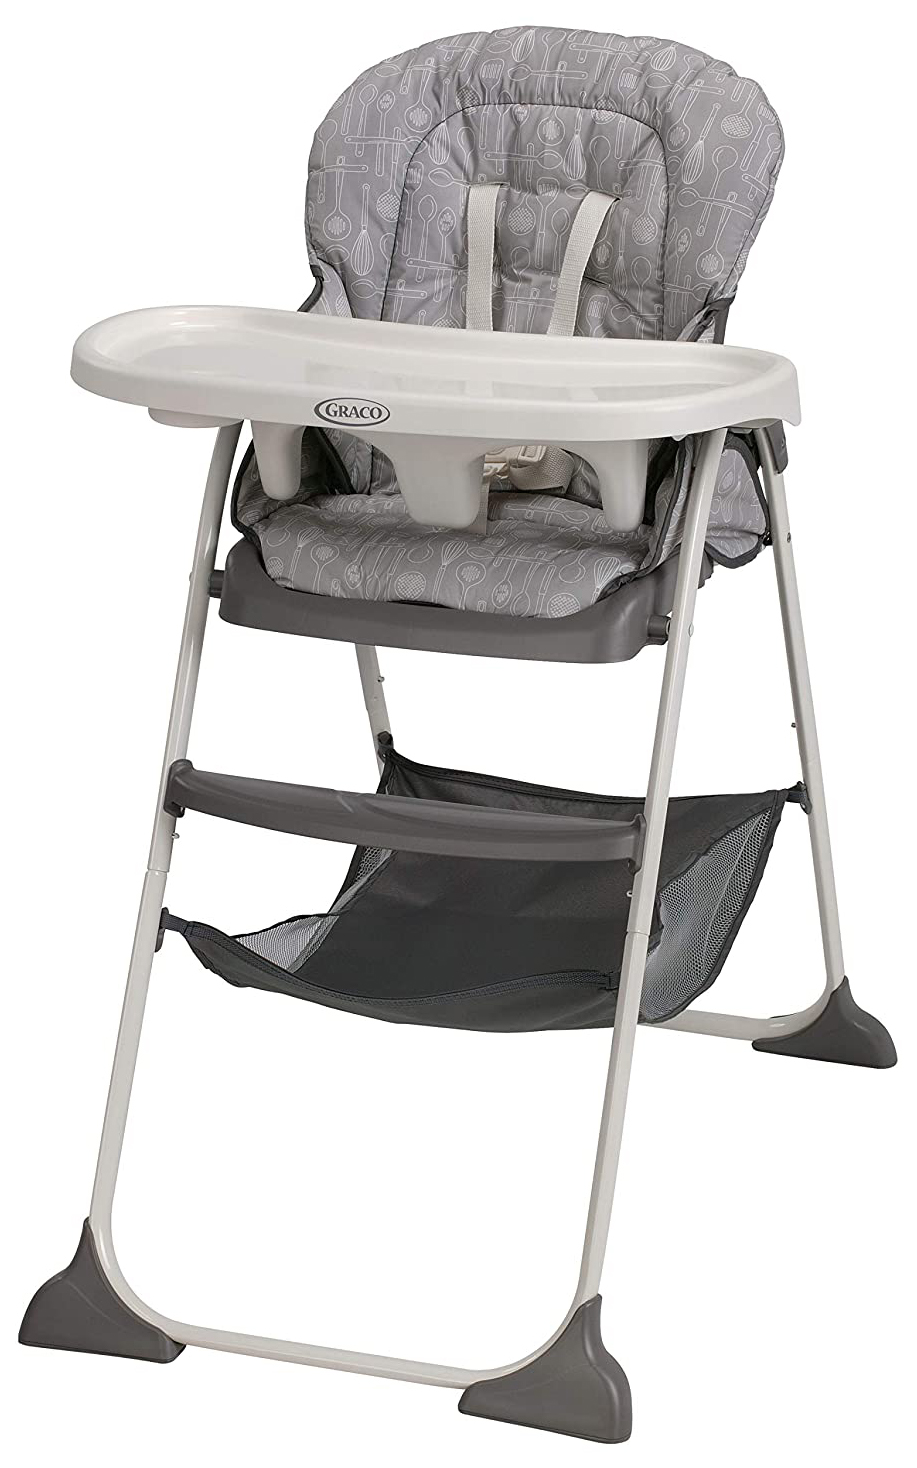 Graco Slim Snacker High Chair | Ultra Compact